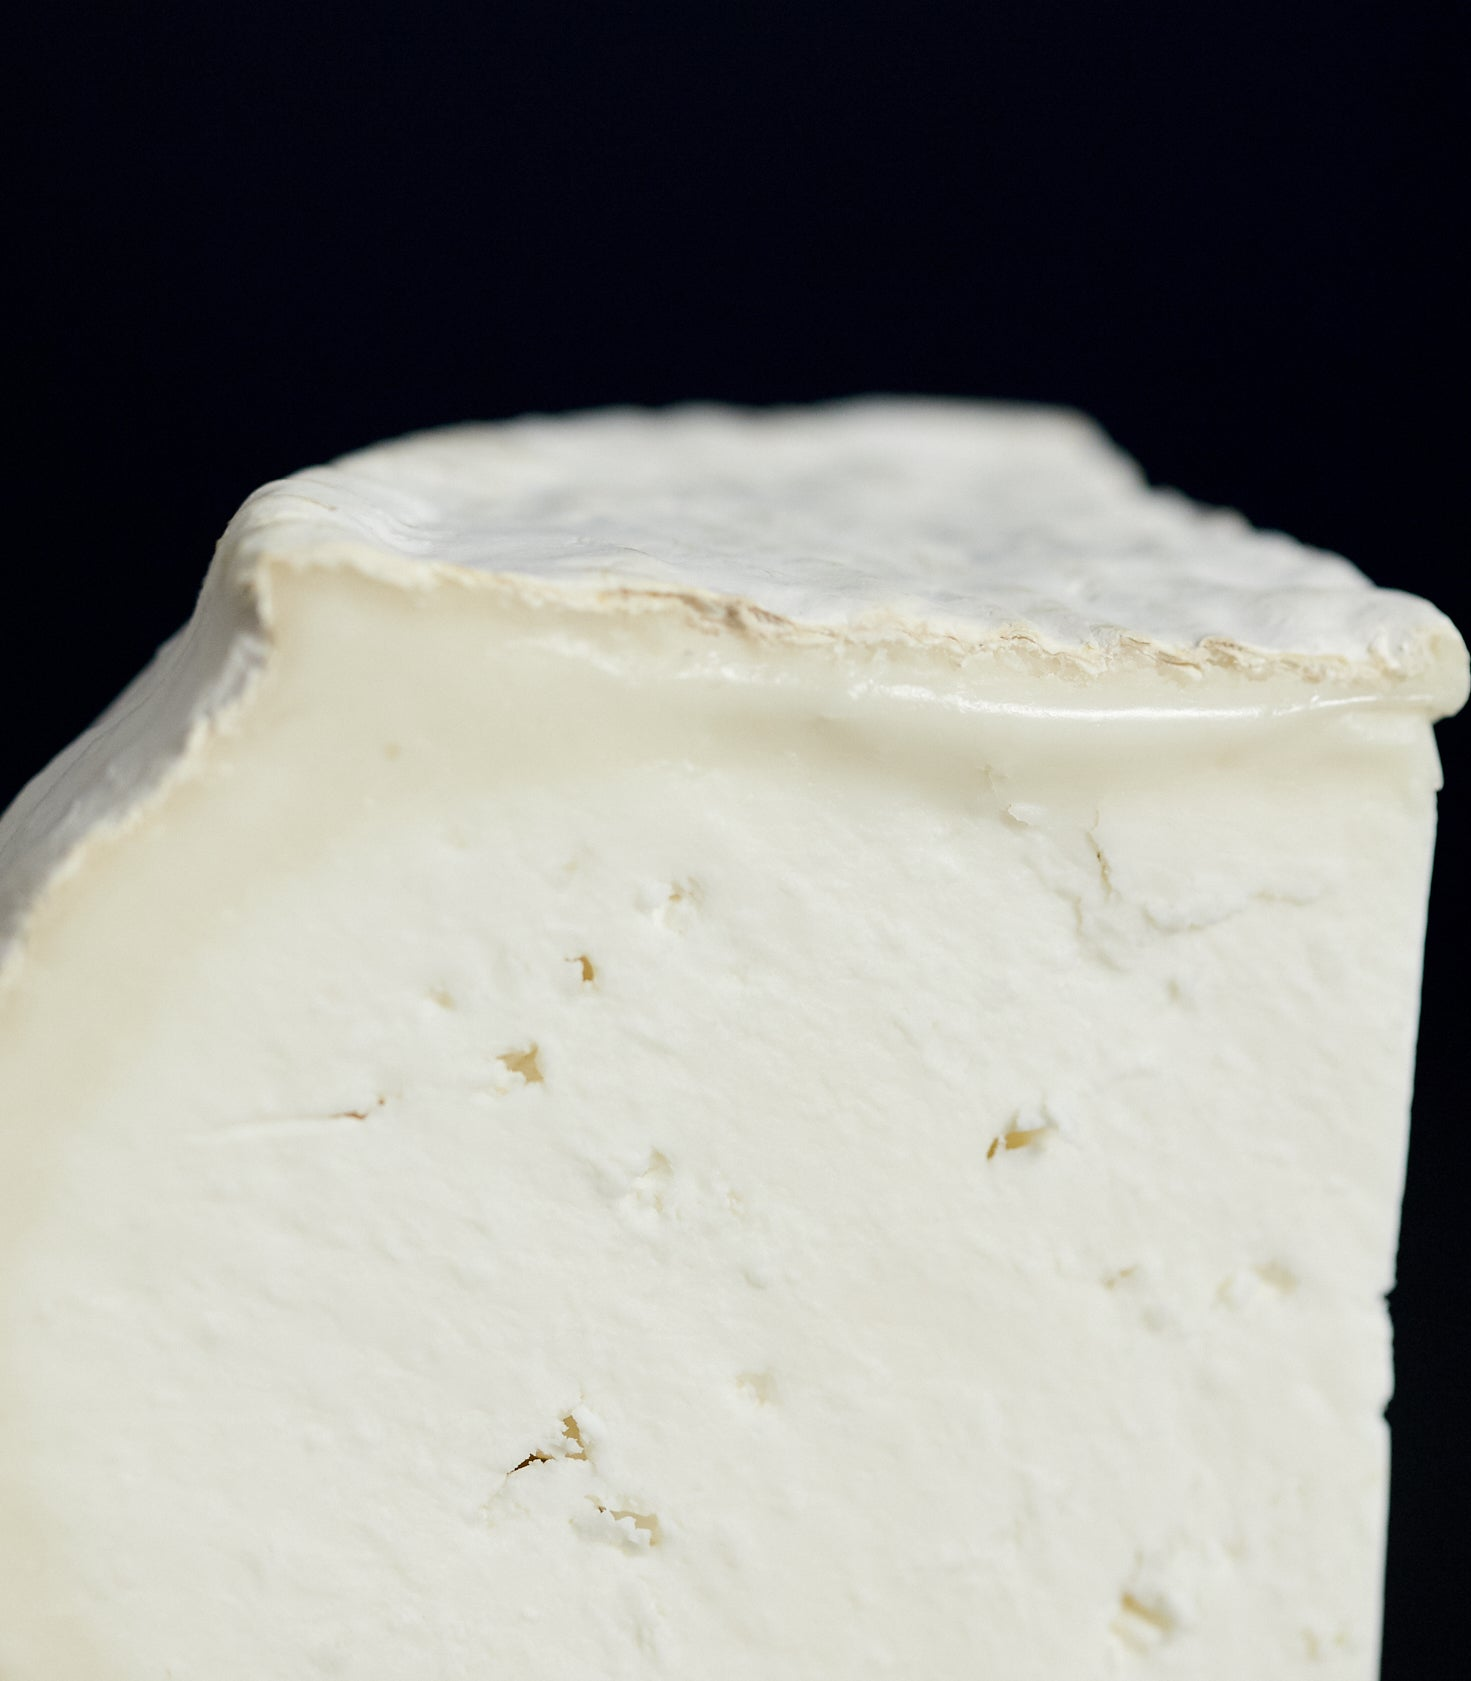 Close up of a cut piece of Ticklemore vegetarian goat's cheese showing the bloomy, natural rind and white, chalky paste